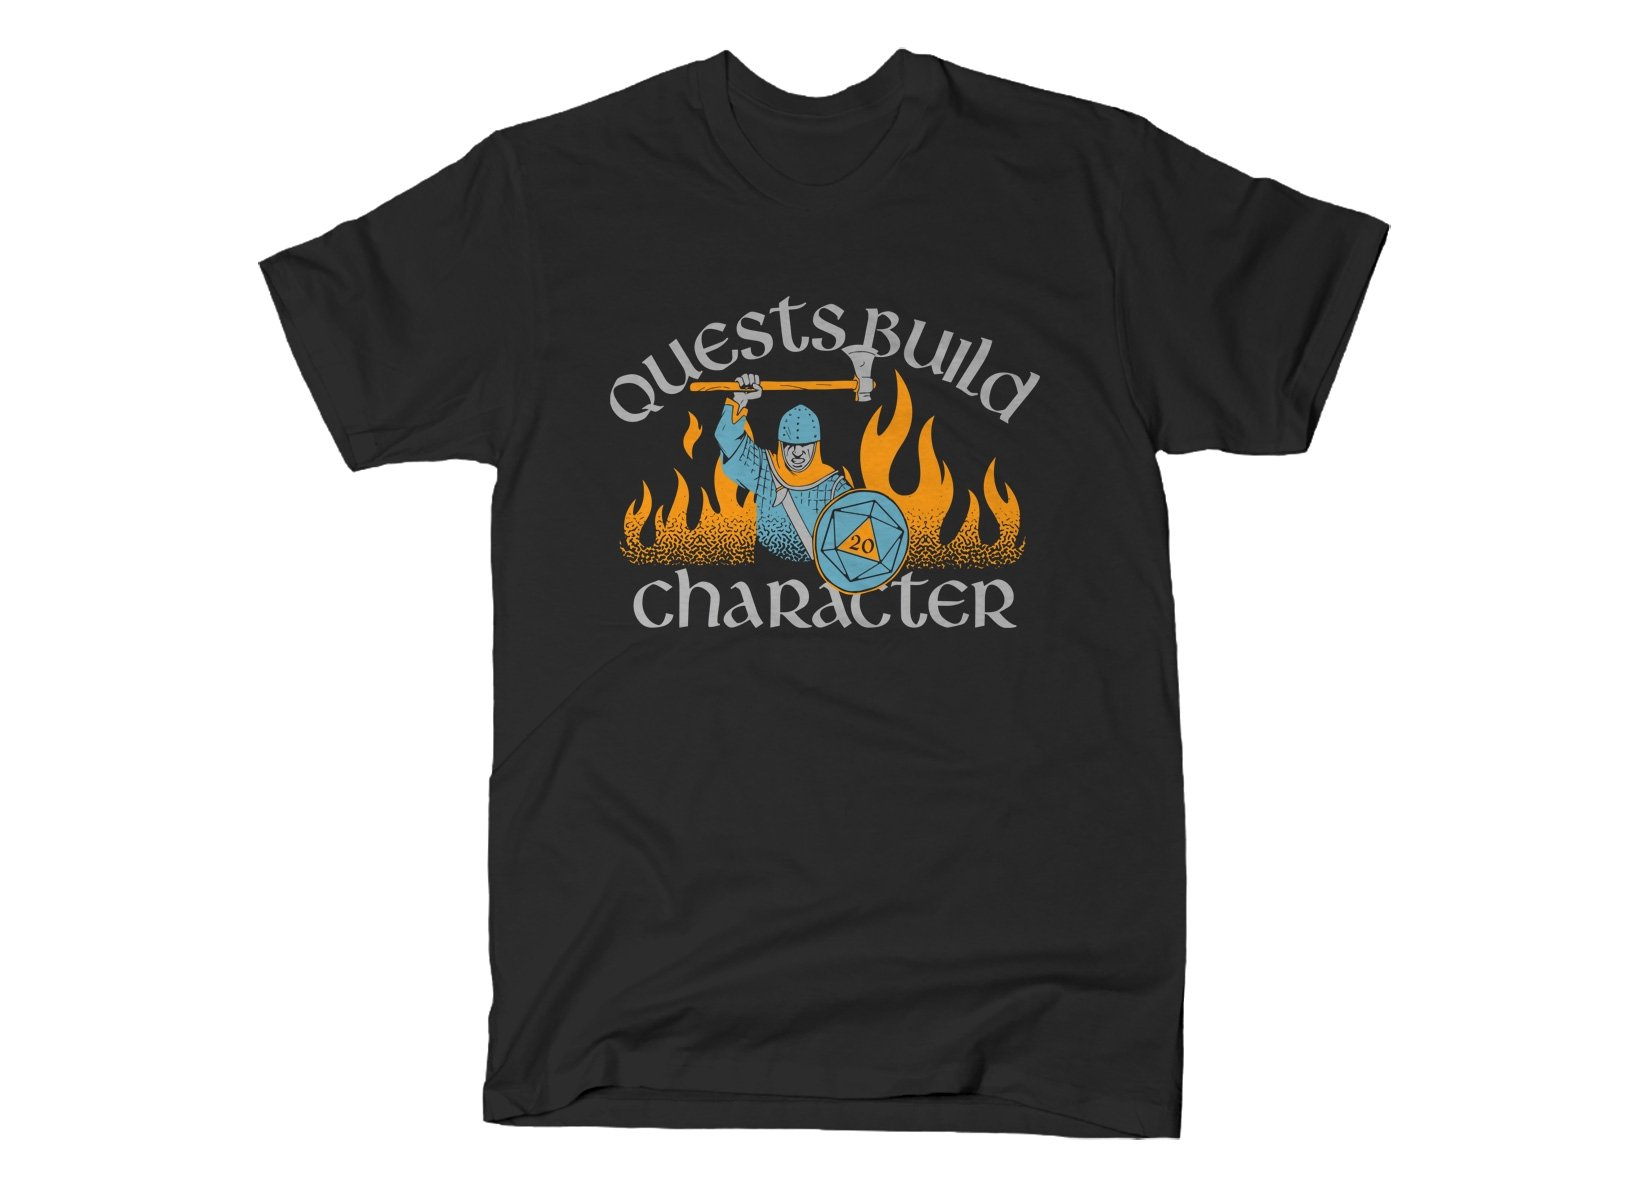 Quests Build Character on Mens T-Shirt